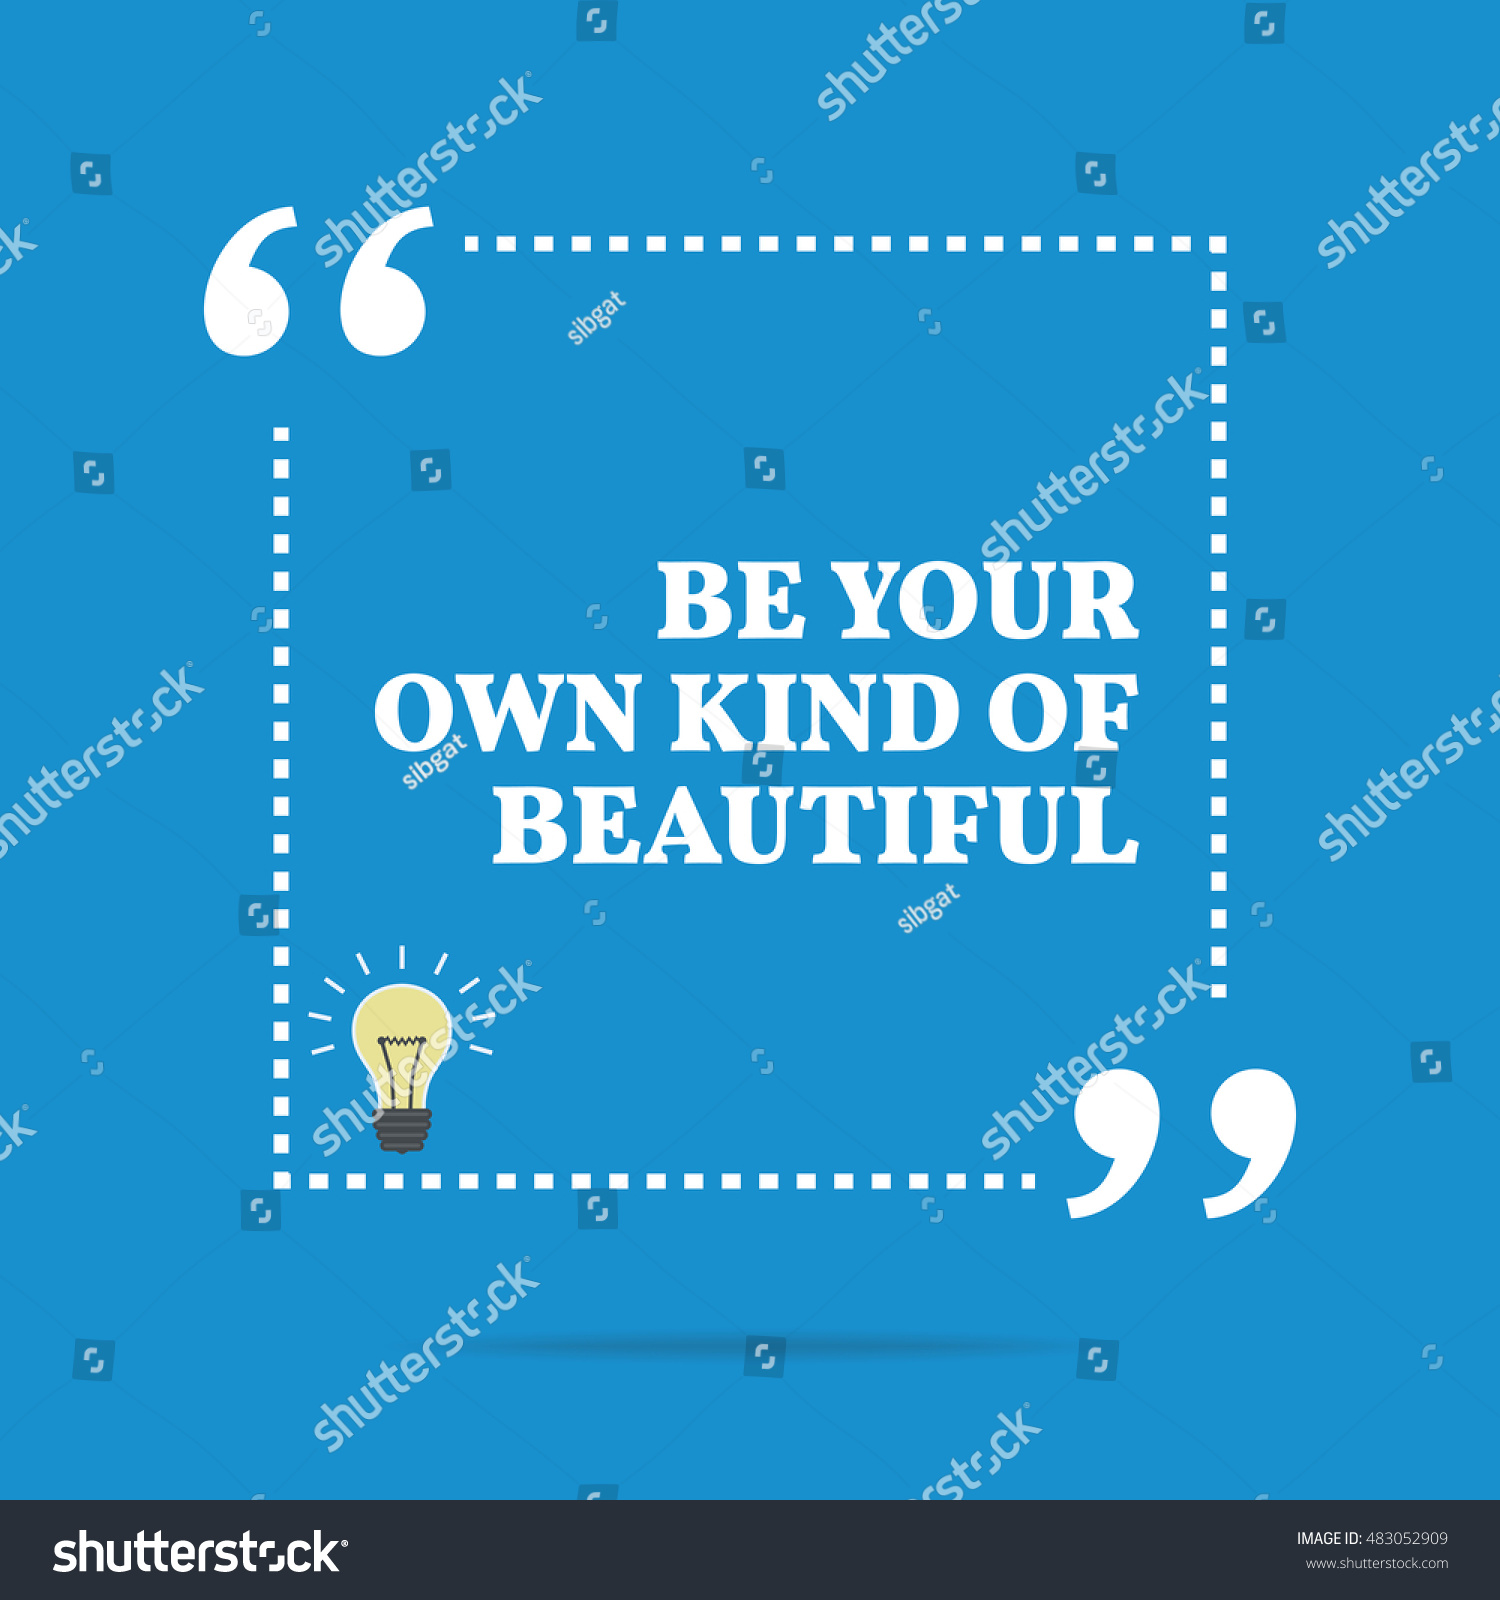 Inspirational Quotes Motivation: Inspirational Motivational Quote Be Your Own Stock